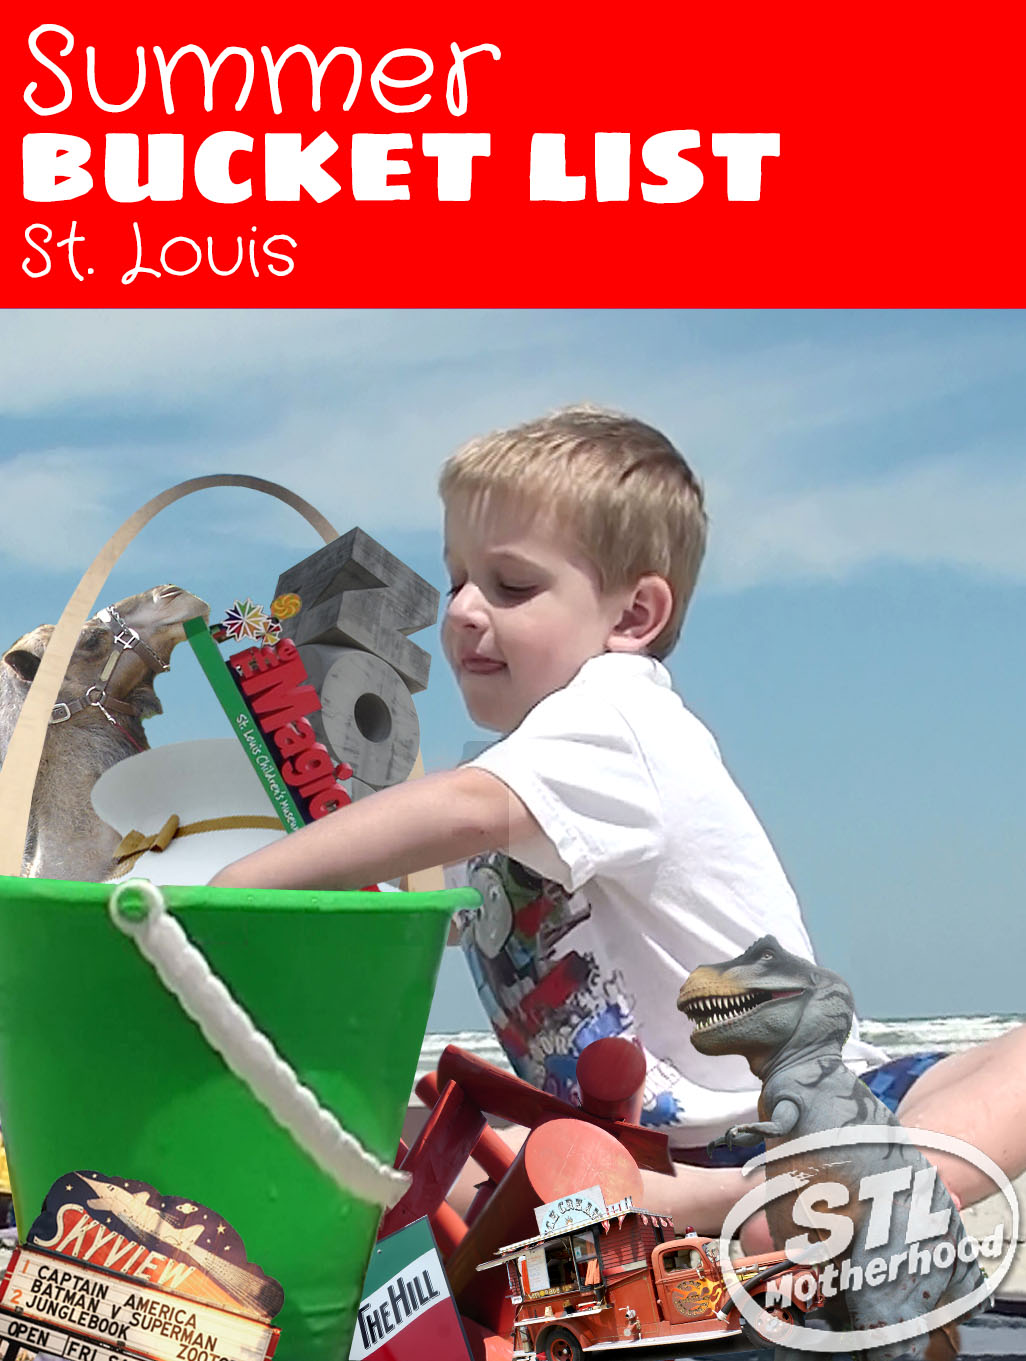 Summer Bucket List for kids in St. Louis